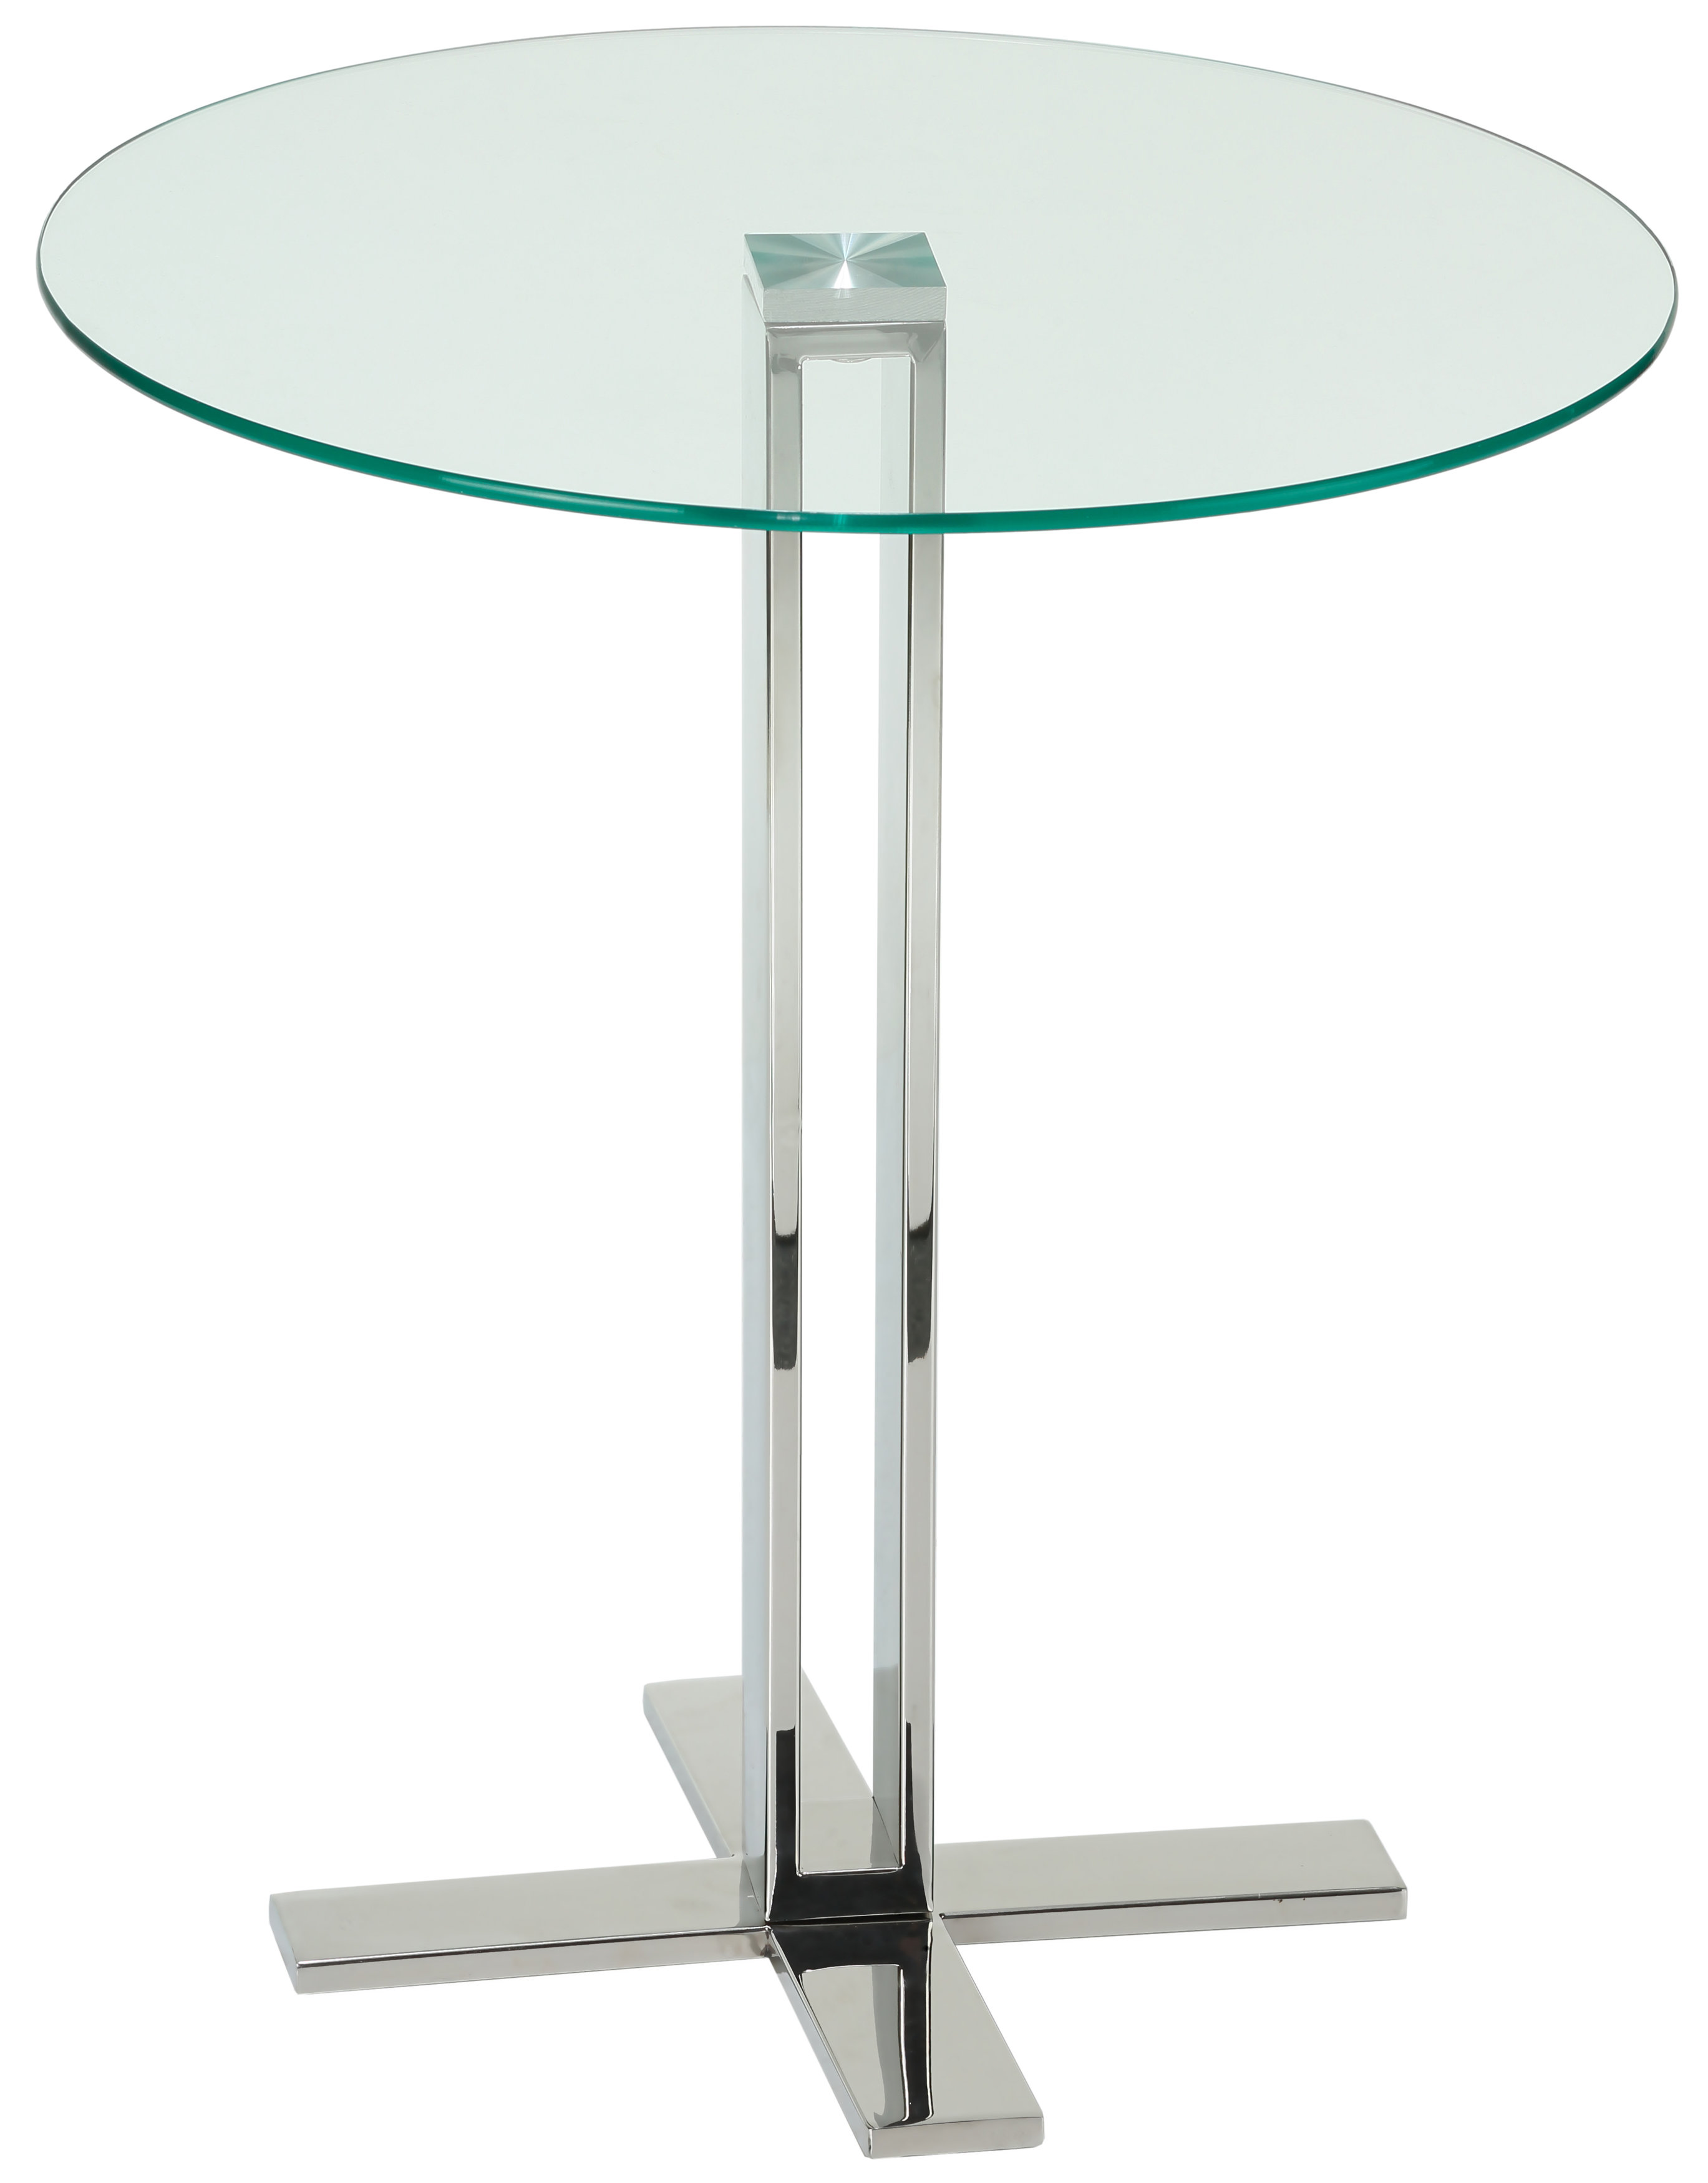 cortesi home solen end table reviews mawr metal accent target clocks winsome wood beechwood espresso pier promo code island county magnussen allure one lamps clearance small